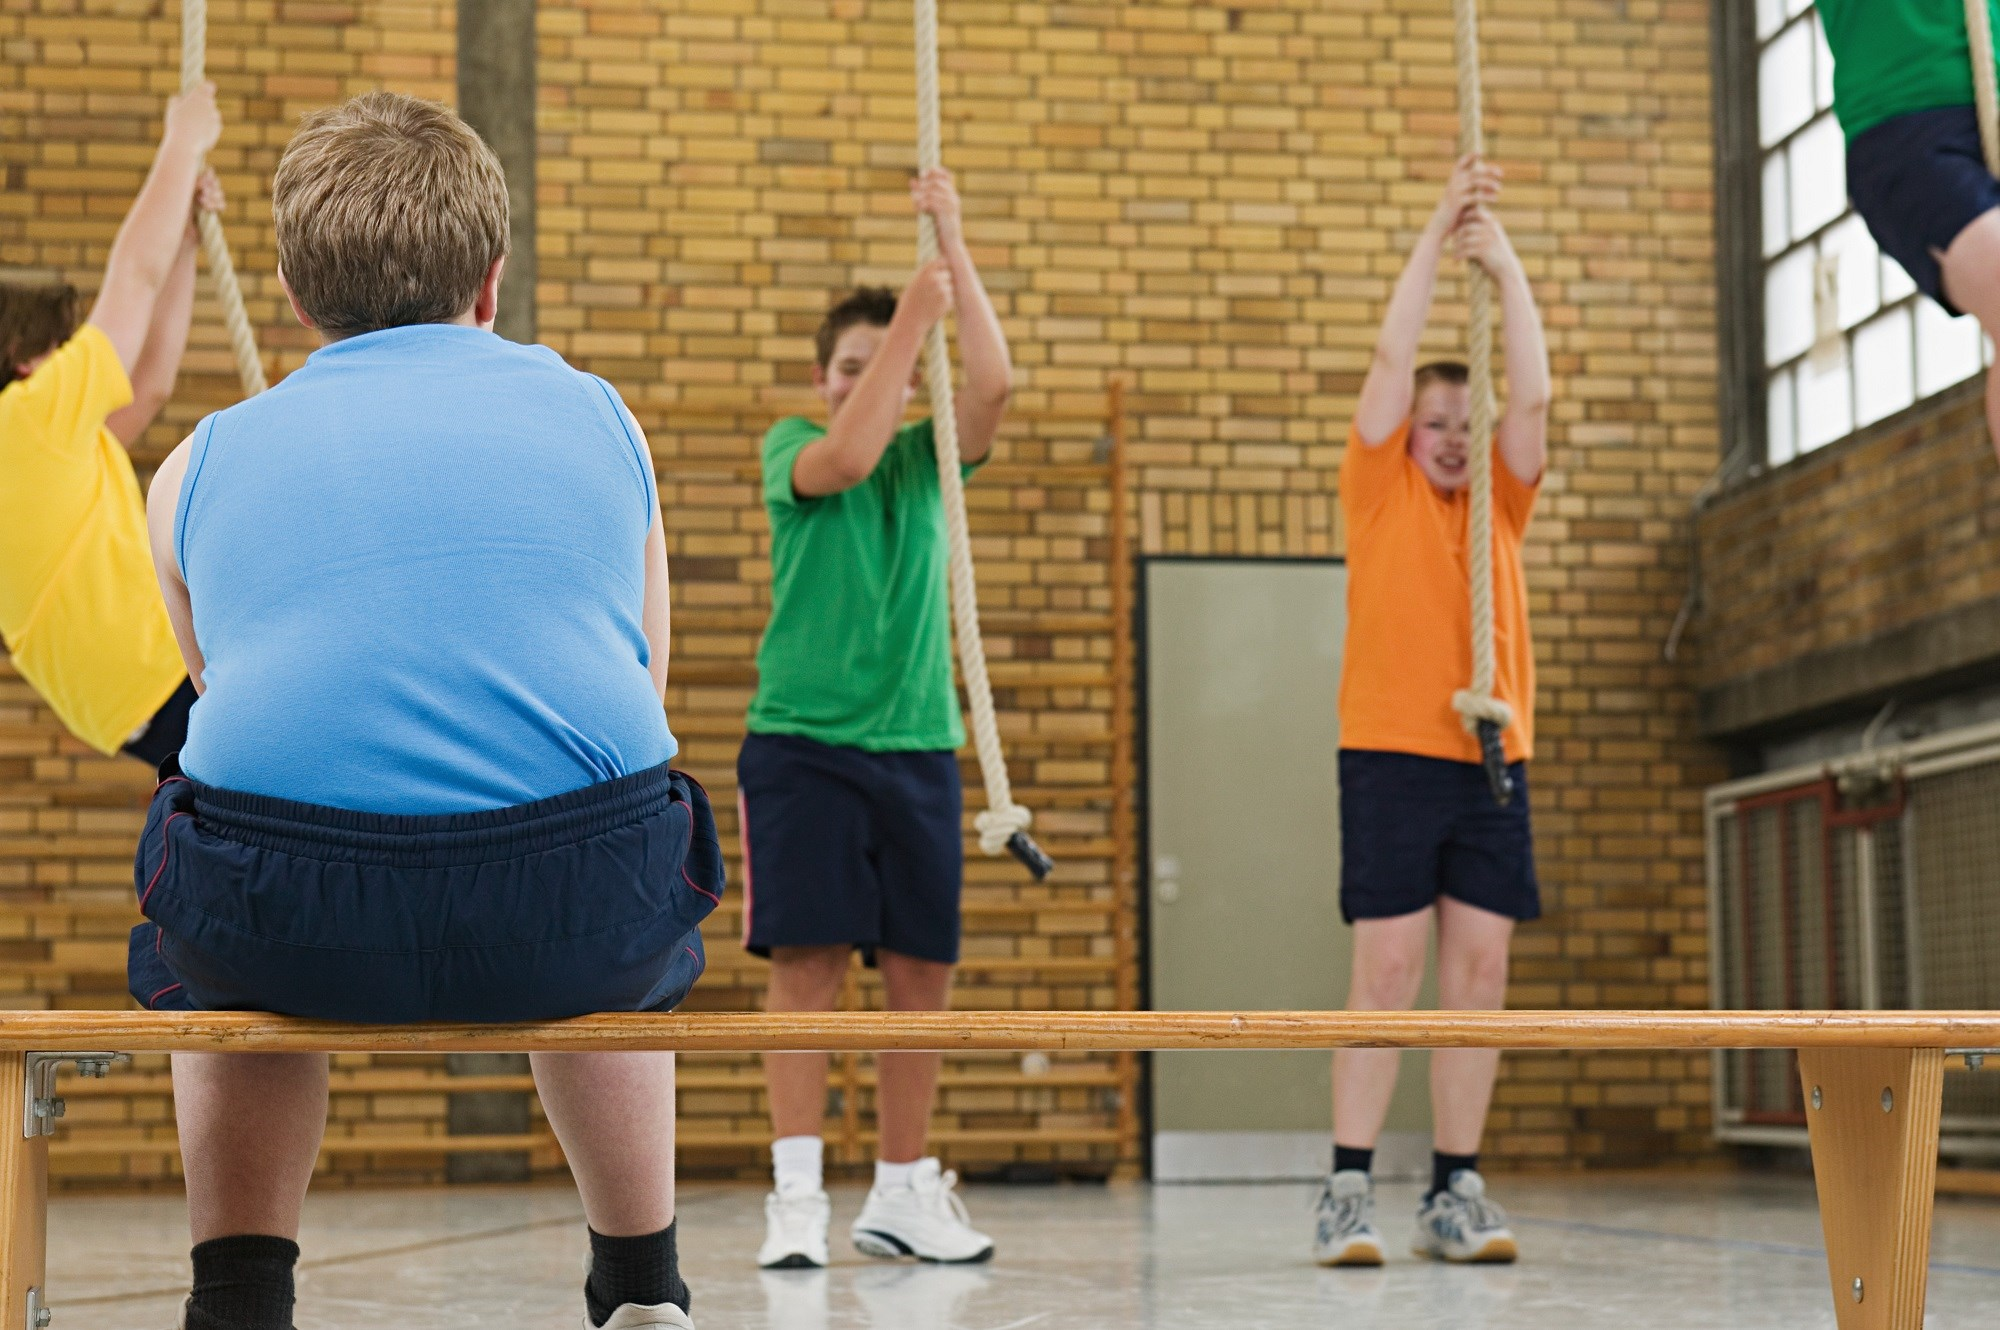 Greater weight gain in early childhood often carries over to overweight and obesity in adolescence.